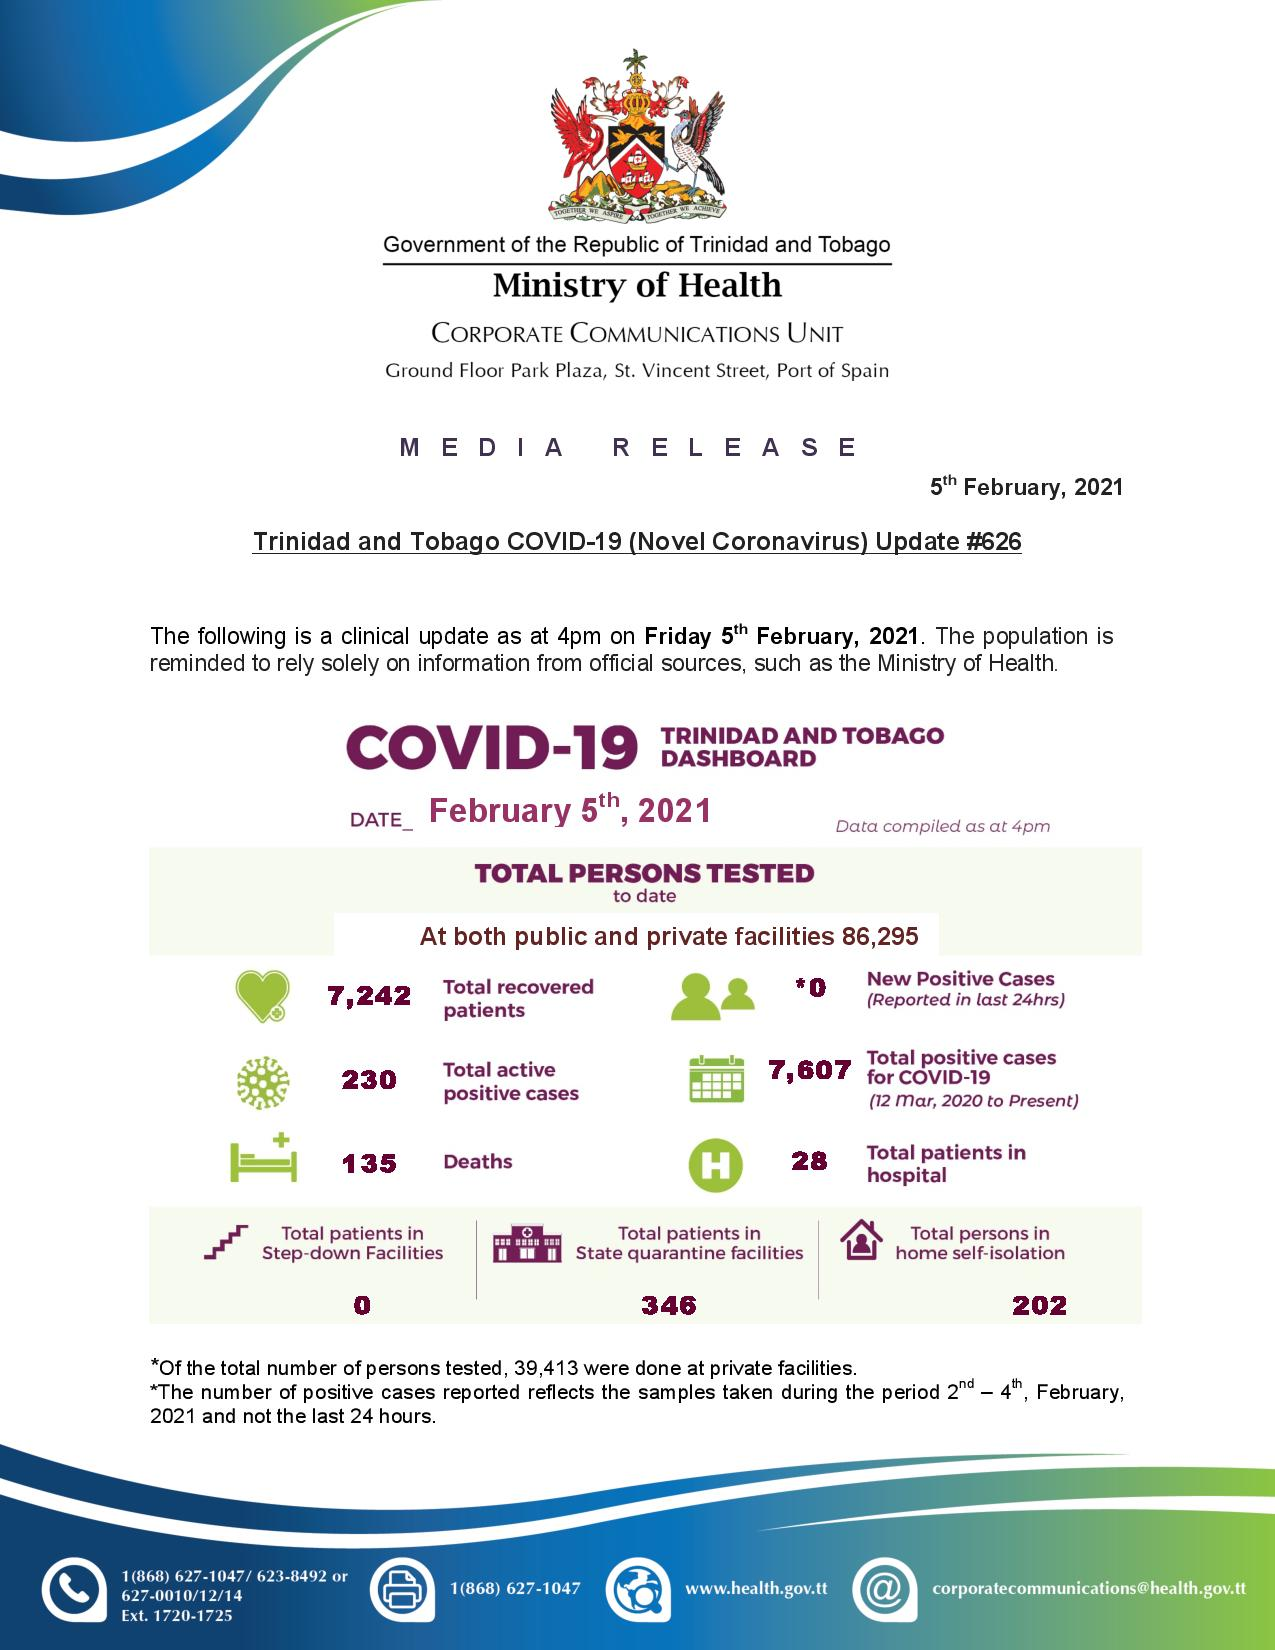 COVID-19 UPDATE - Friday 5th February 2021